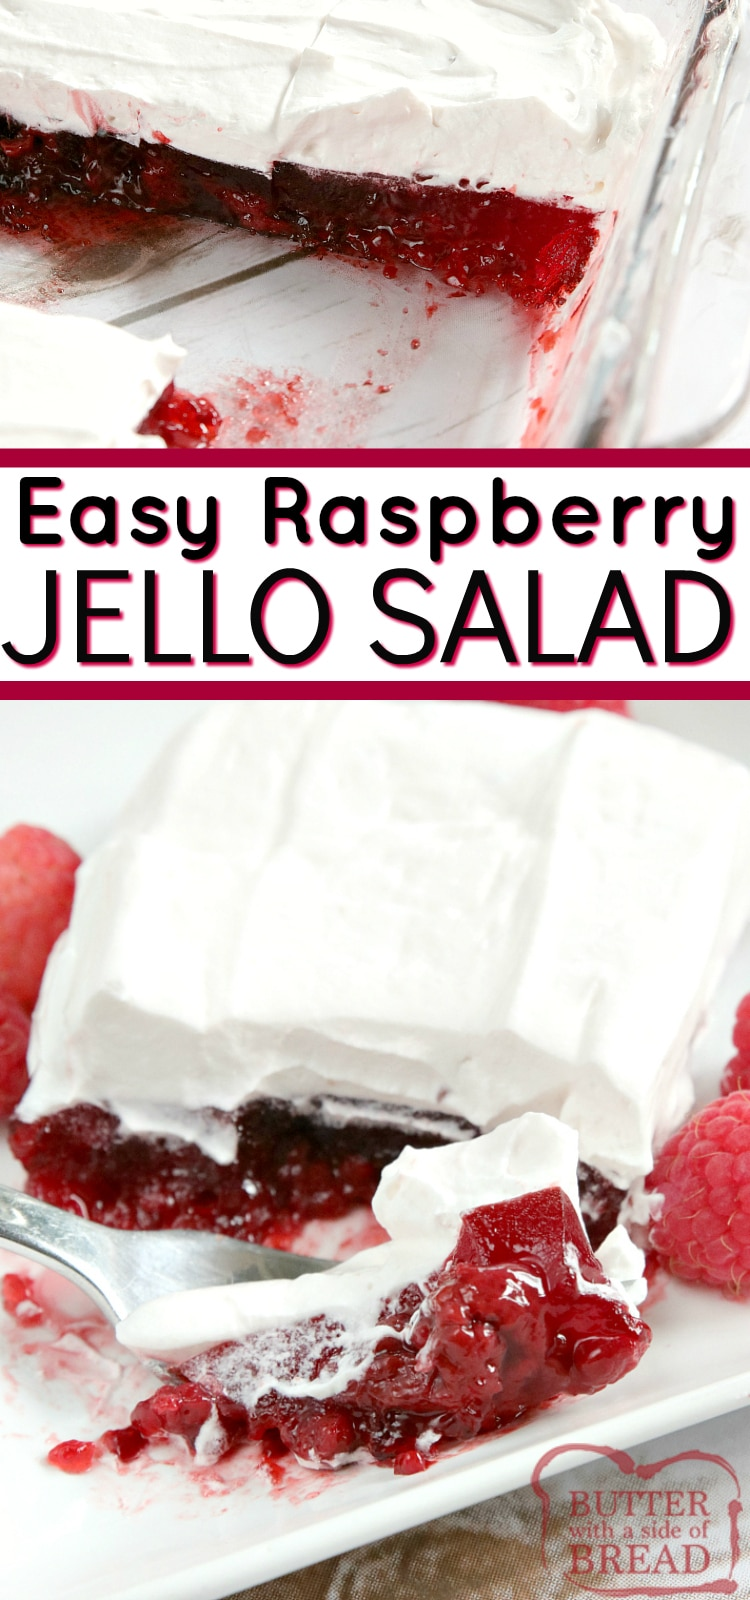 Easy Raspberry Jello Salad is made with raspberry pie filling and jello and then is topped with a creamy raspberry layer. Only four ingredients for an easy jello recipe that works as a side dish or a dessert!